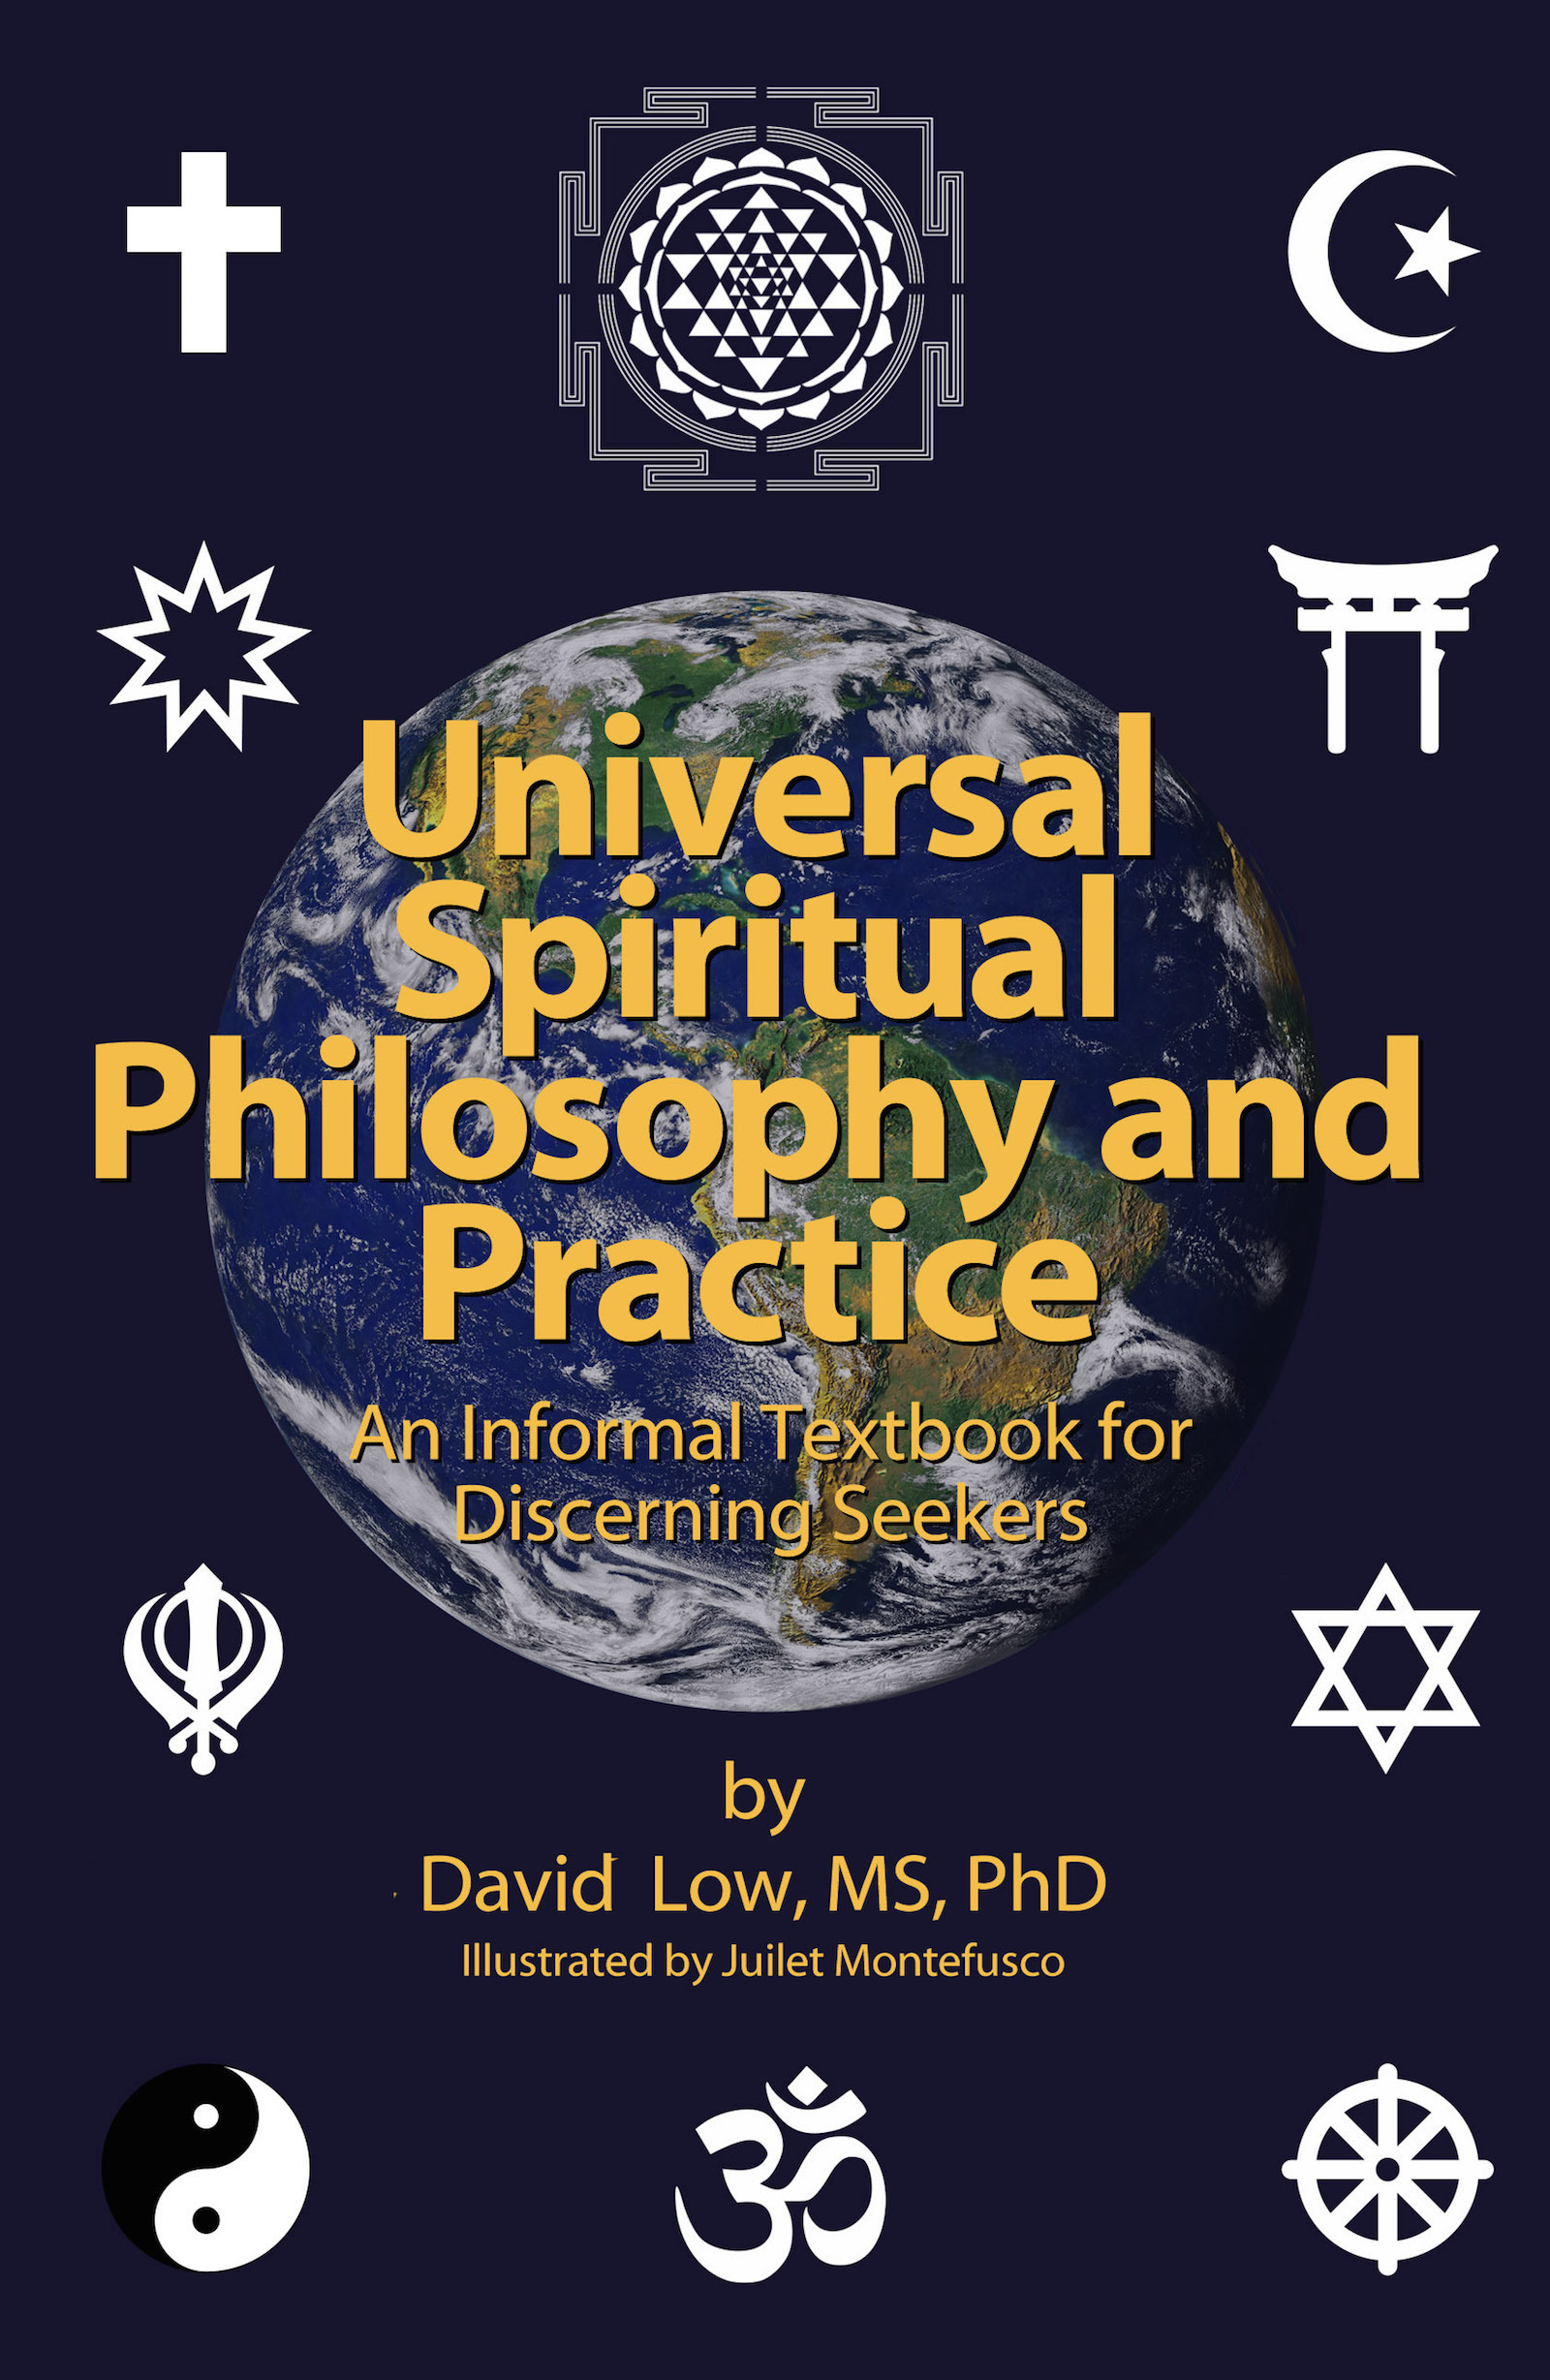 Universal Spiritual Philosophy and Practice: an Informal Textbook for Discerning Seekers  by  David Low